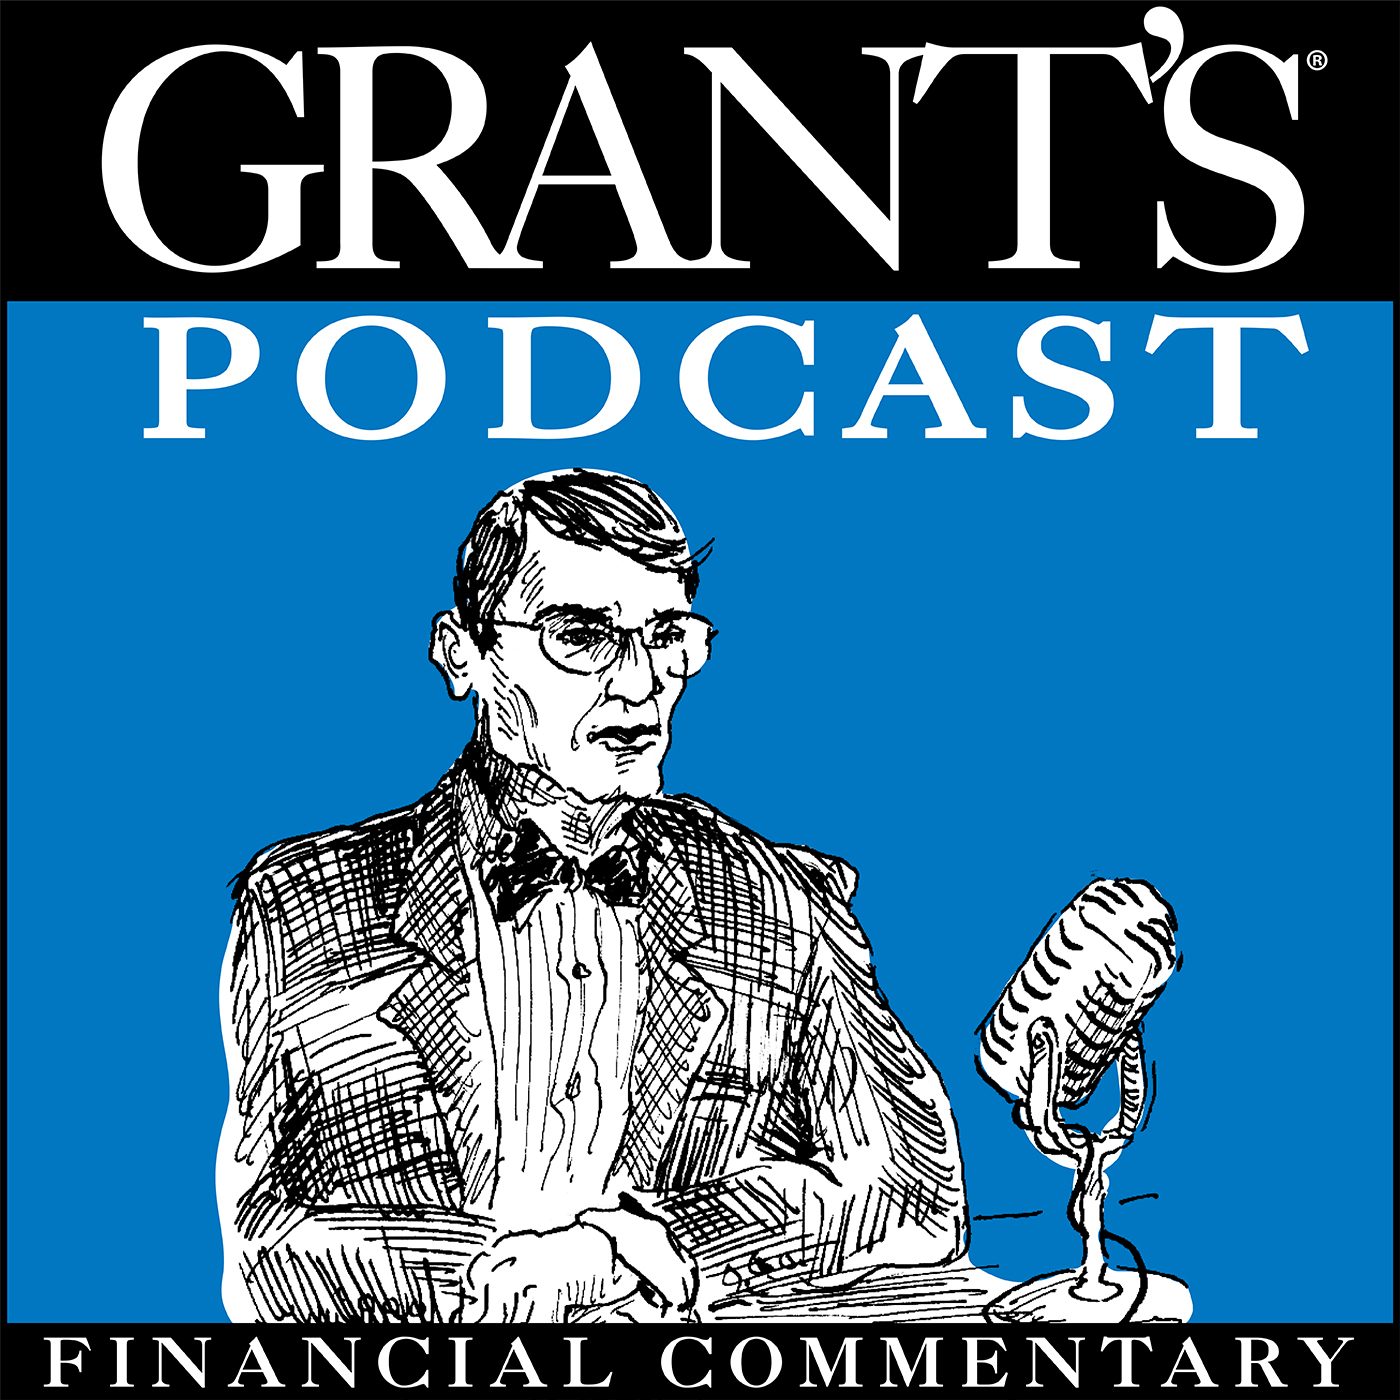 Grant's Podcast